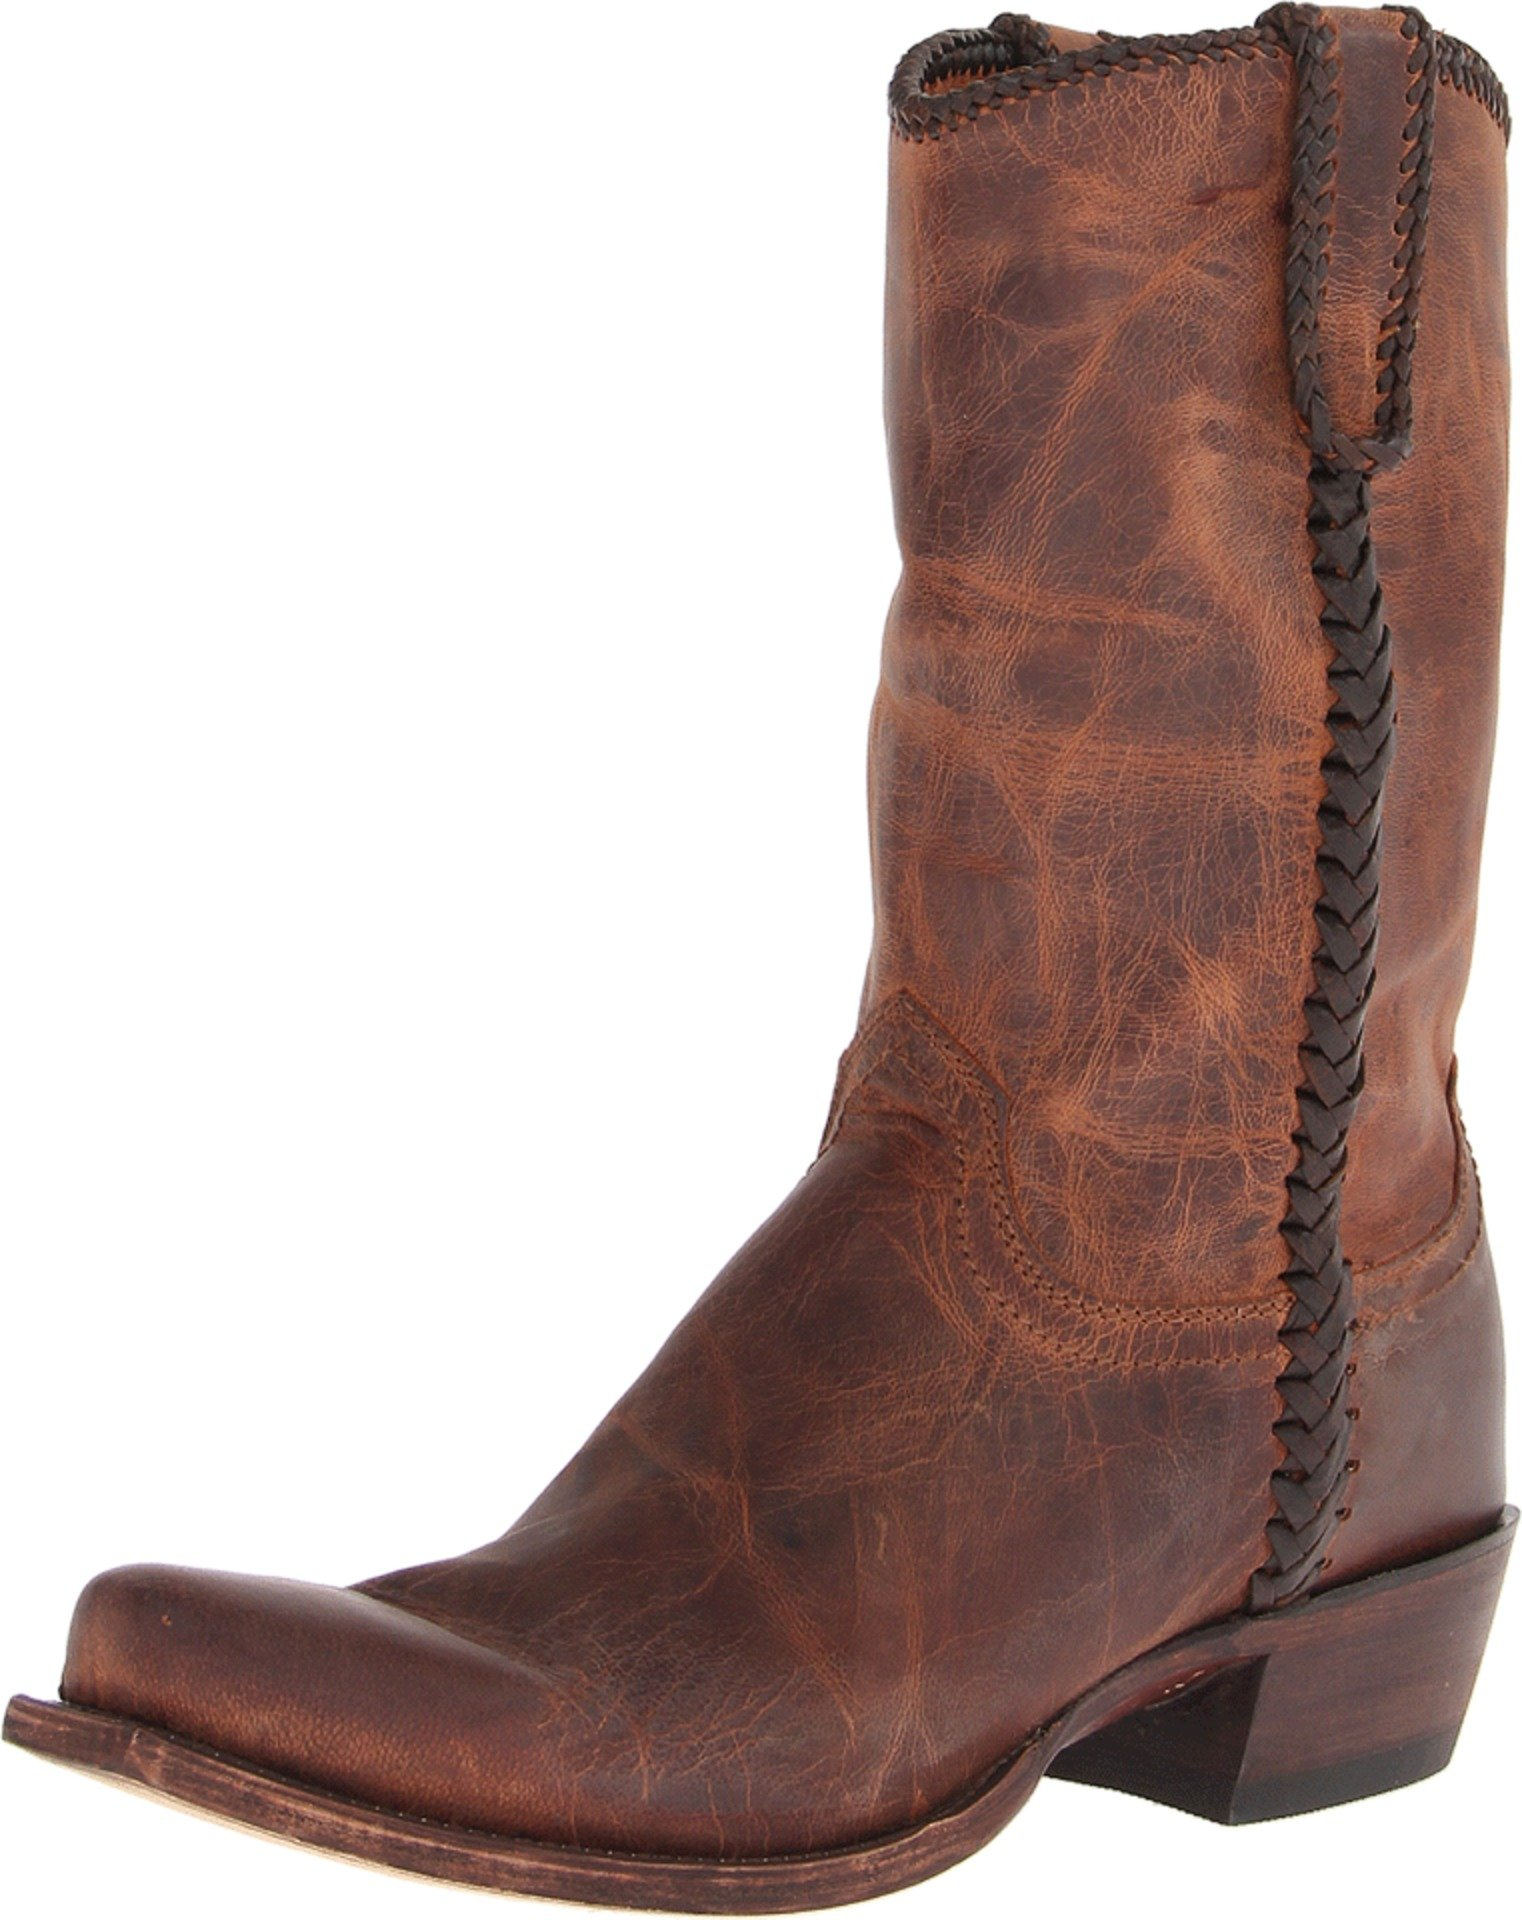 Lucchese Classics Men's Clayton Western Boot, Peanut Brittle, 8 D US